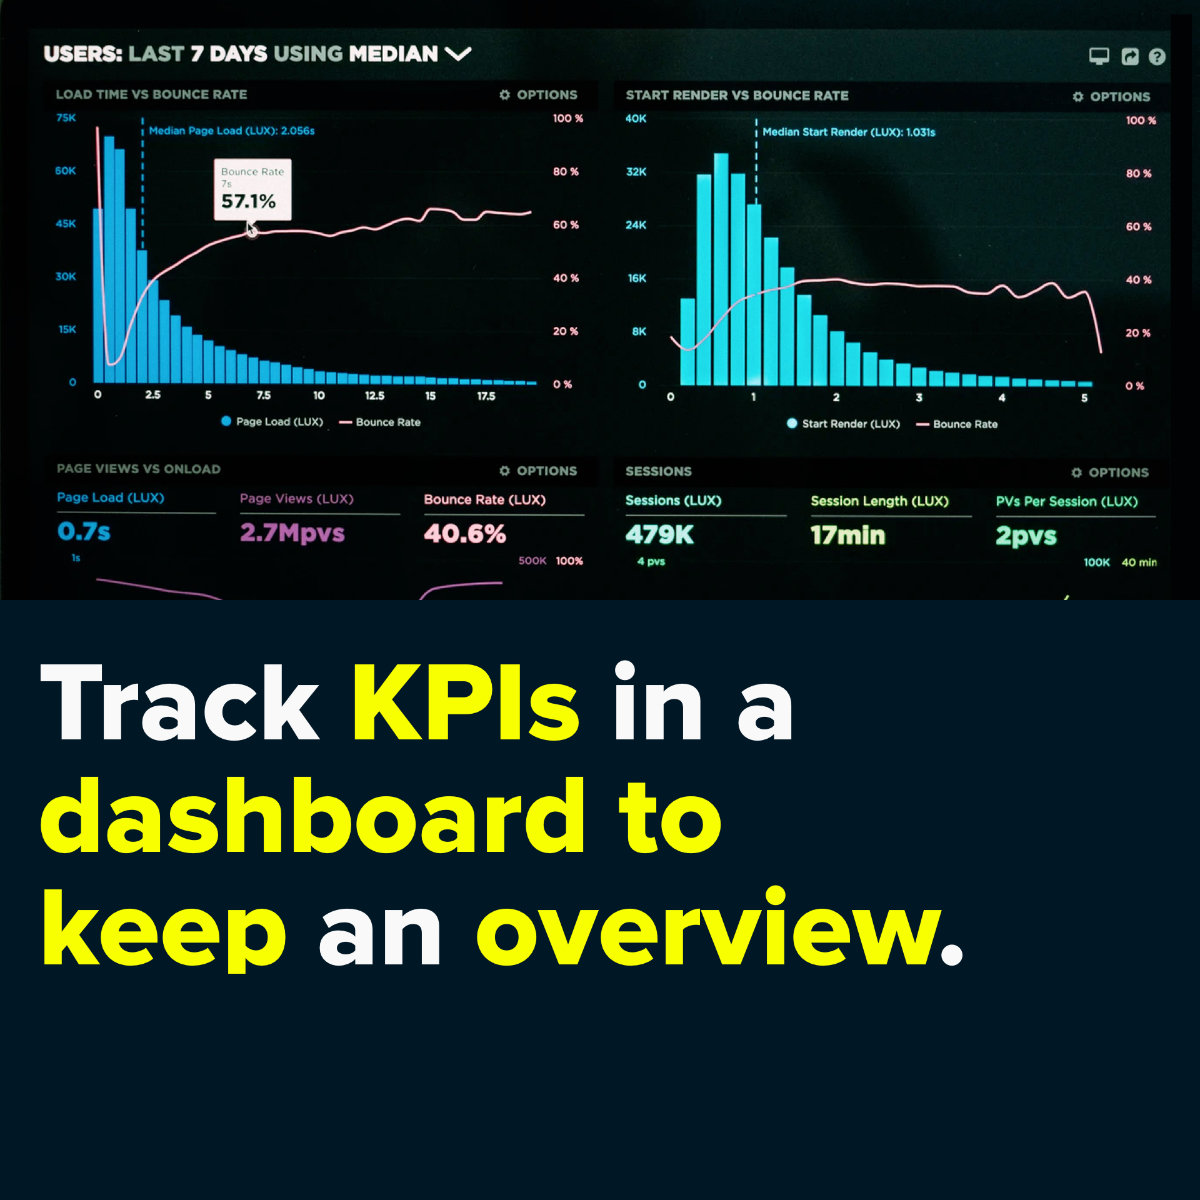 Track kpis in a dashboard to keep an overview